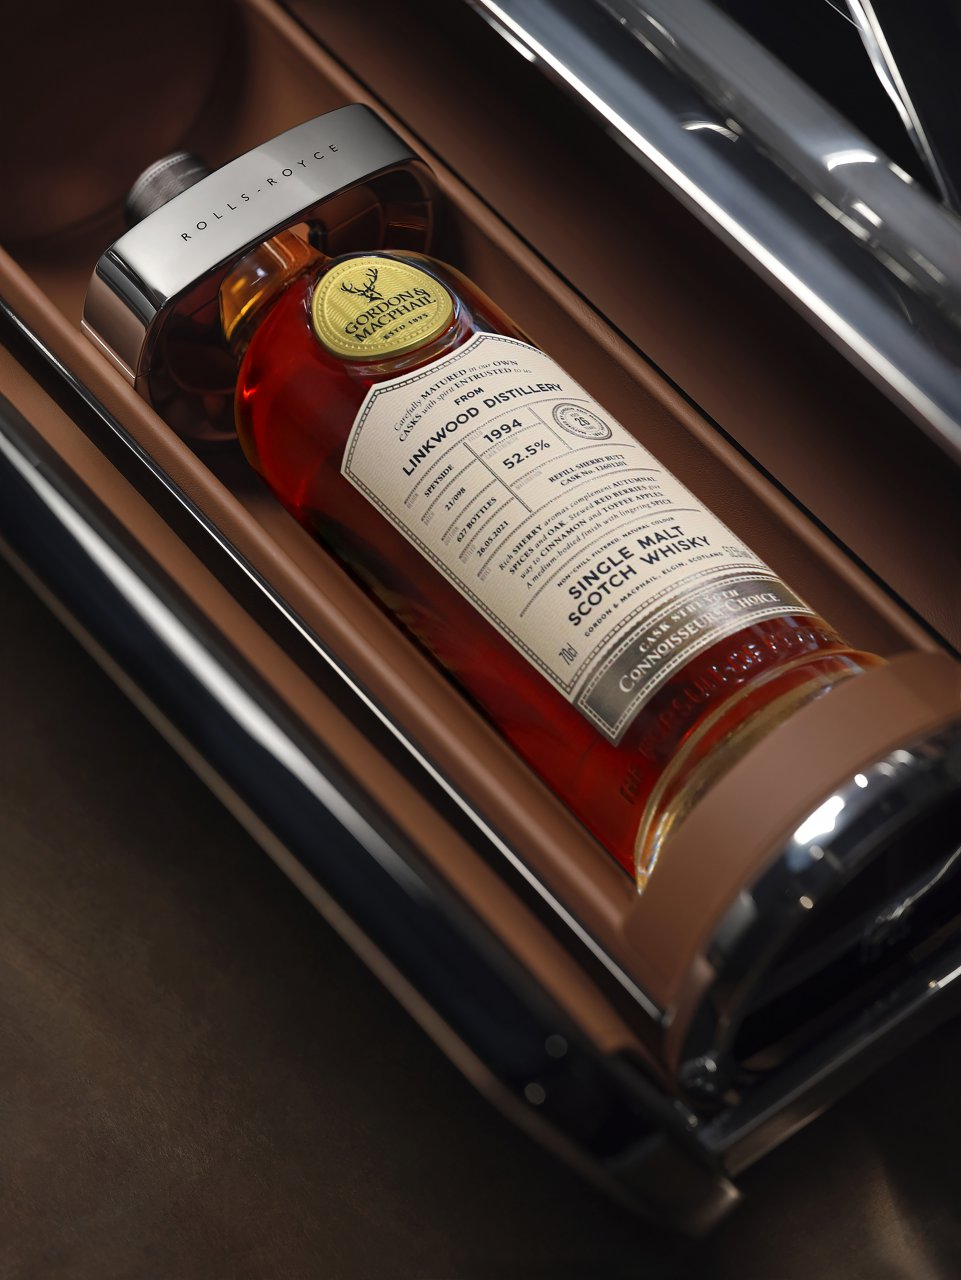 whisky, Rolls-Royce whisky and cigar chest designed to entertain the wealthiest of guests, ClassicCars.com Journal